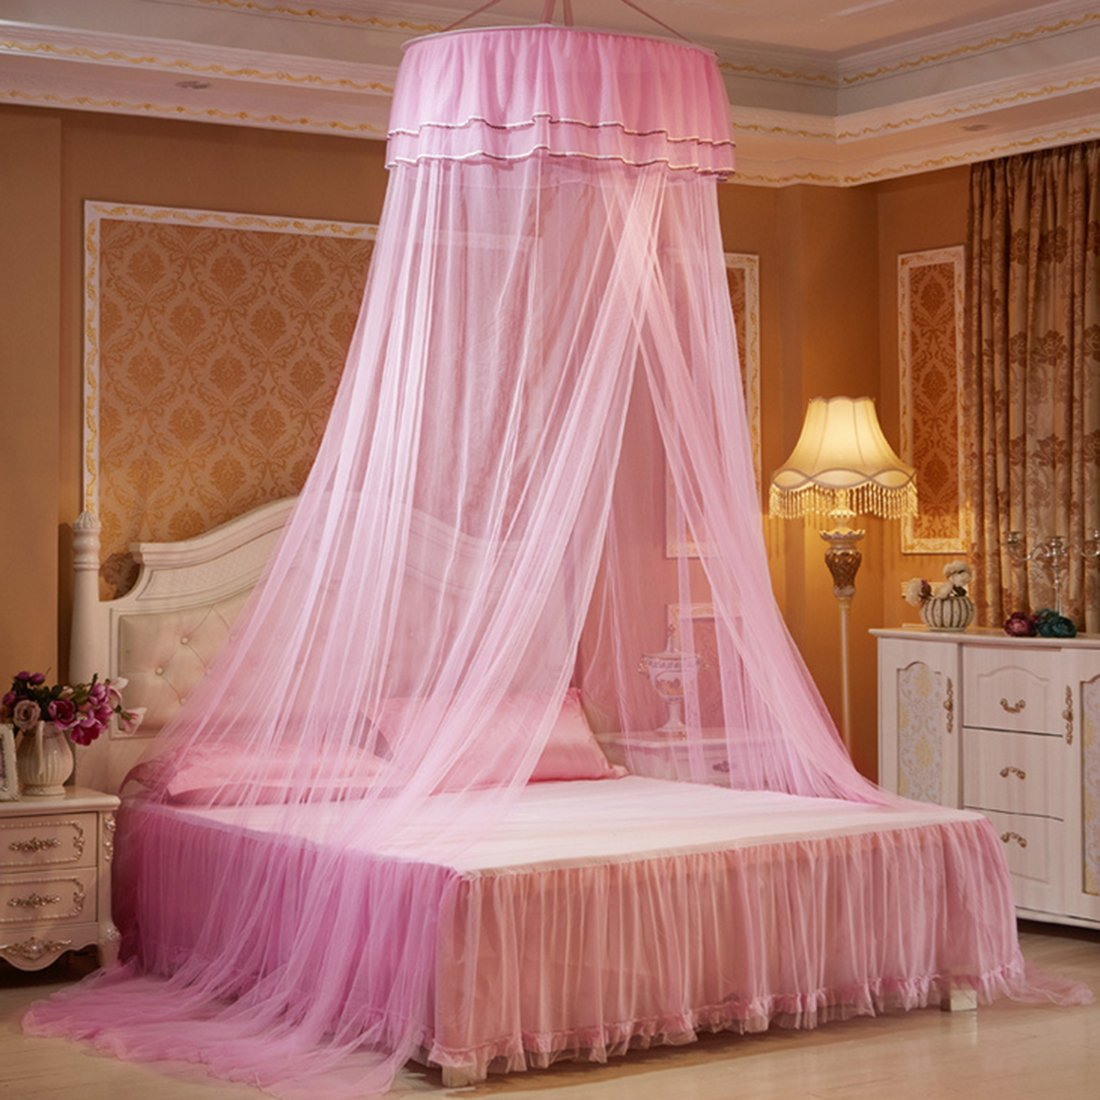 Haoun Mosquito Net, Bed Canopy Bed Curtains From Ceiling Princess Bed Canopy for Girls Bed - Pink